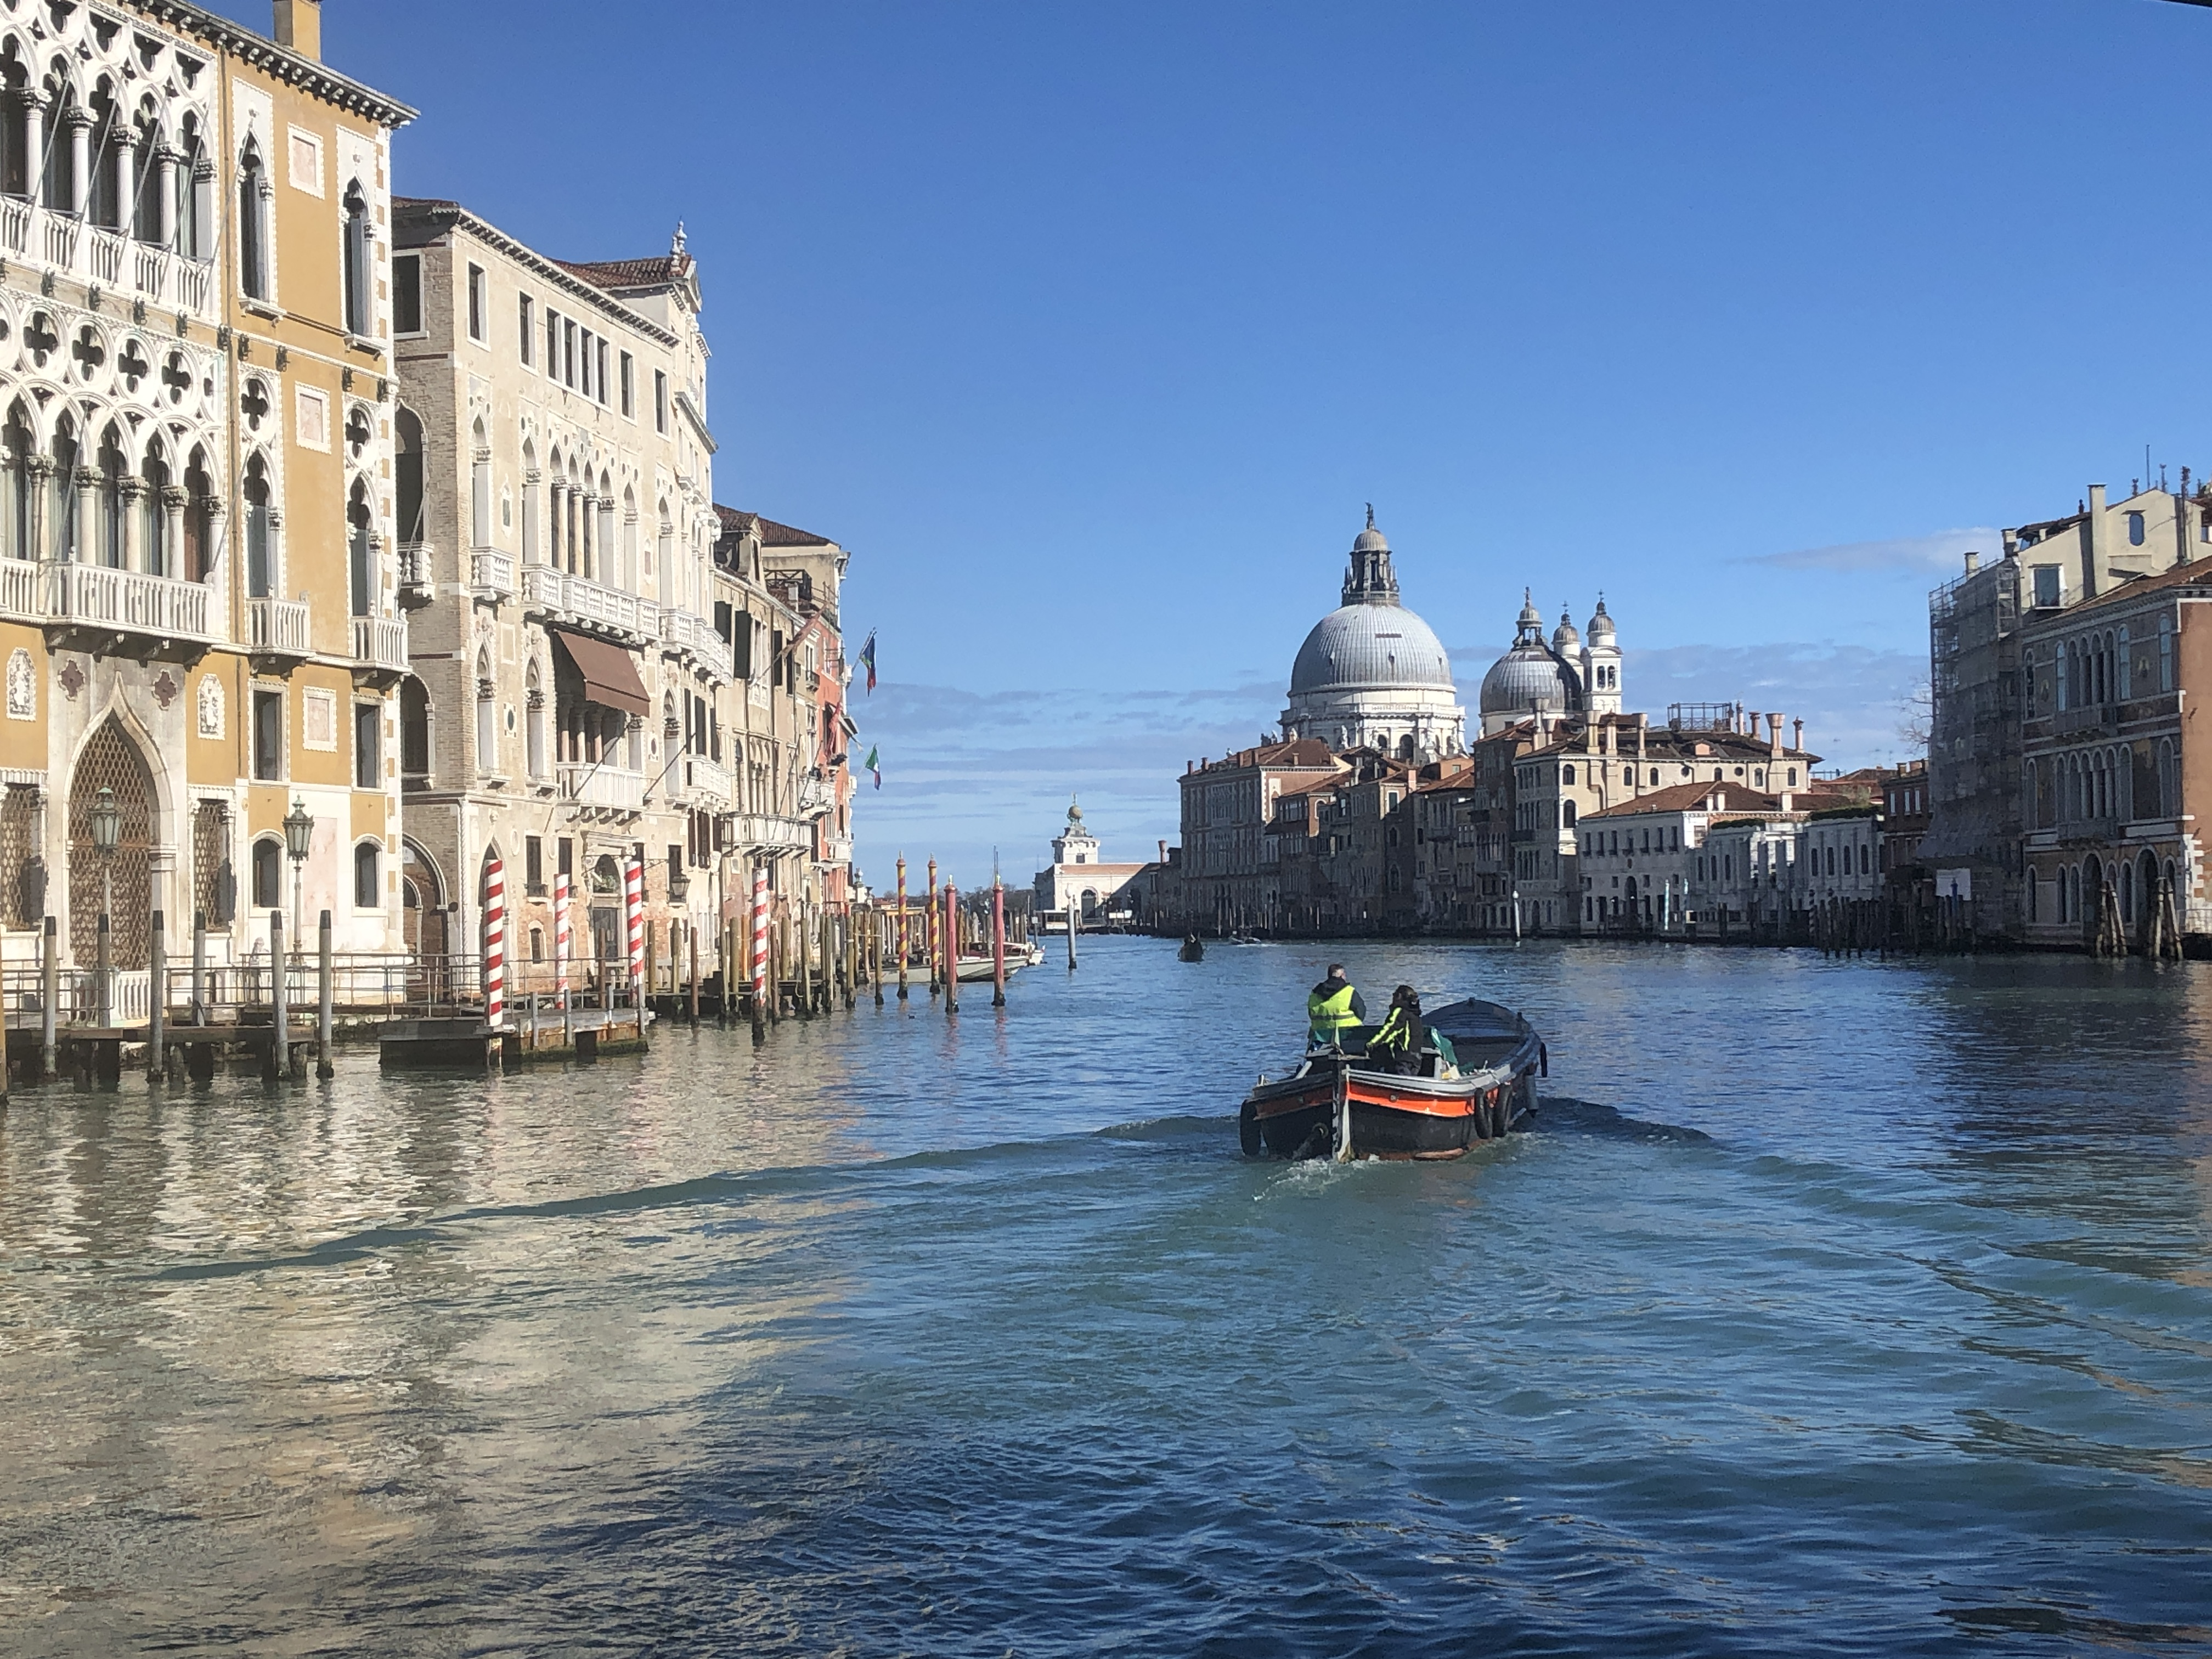 Venice - Grand Canal, Guggenheim, Salute - January, 2020